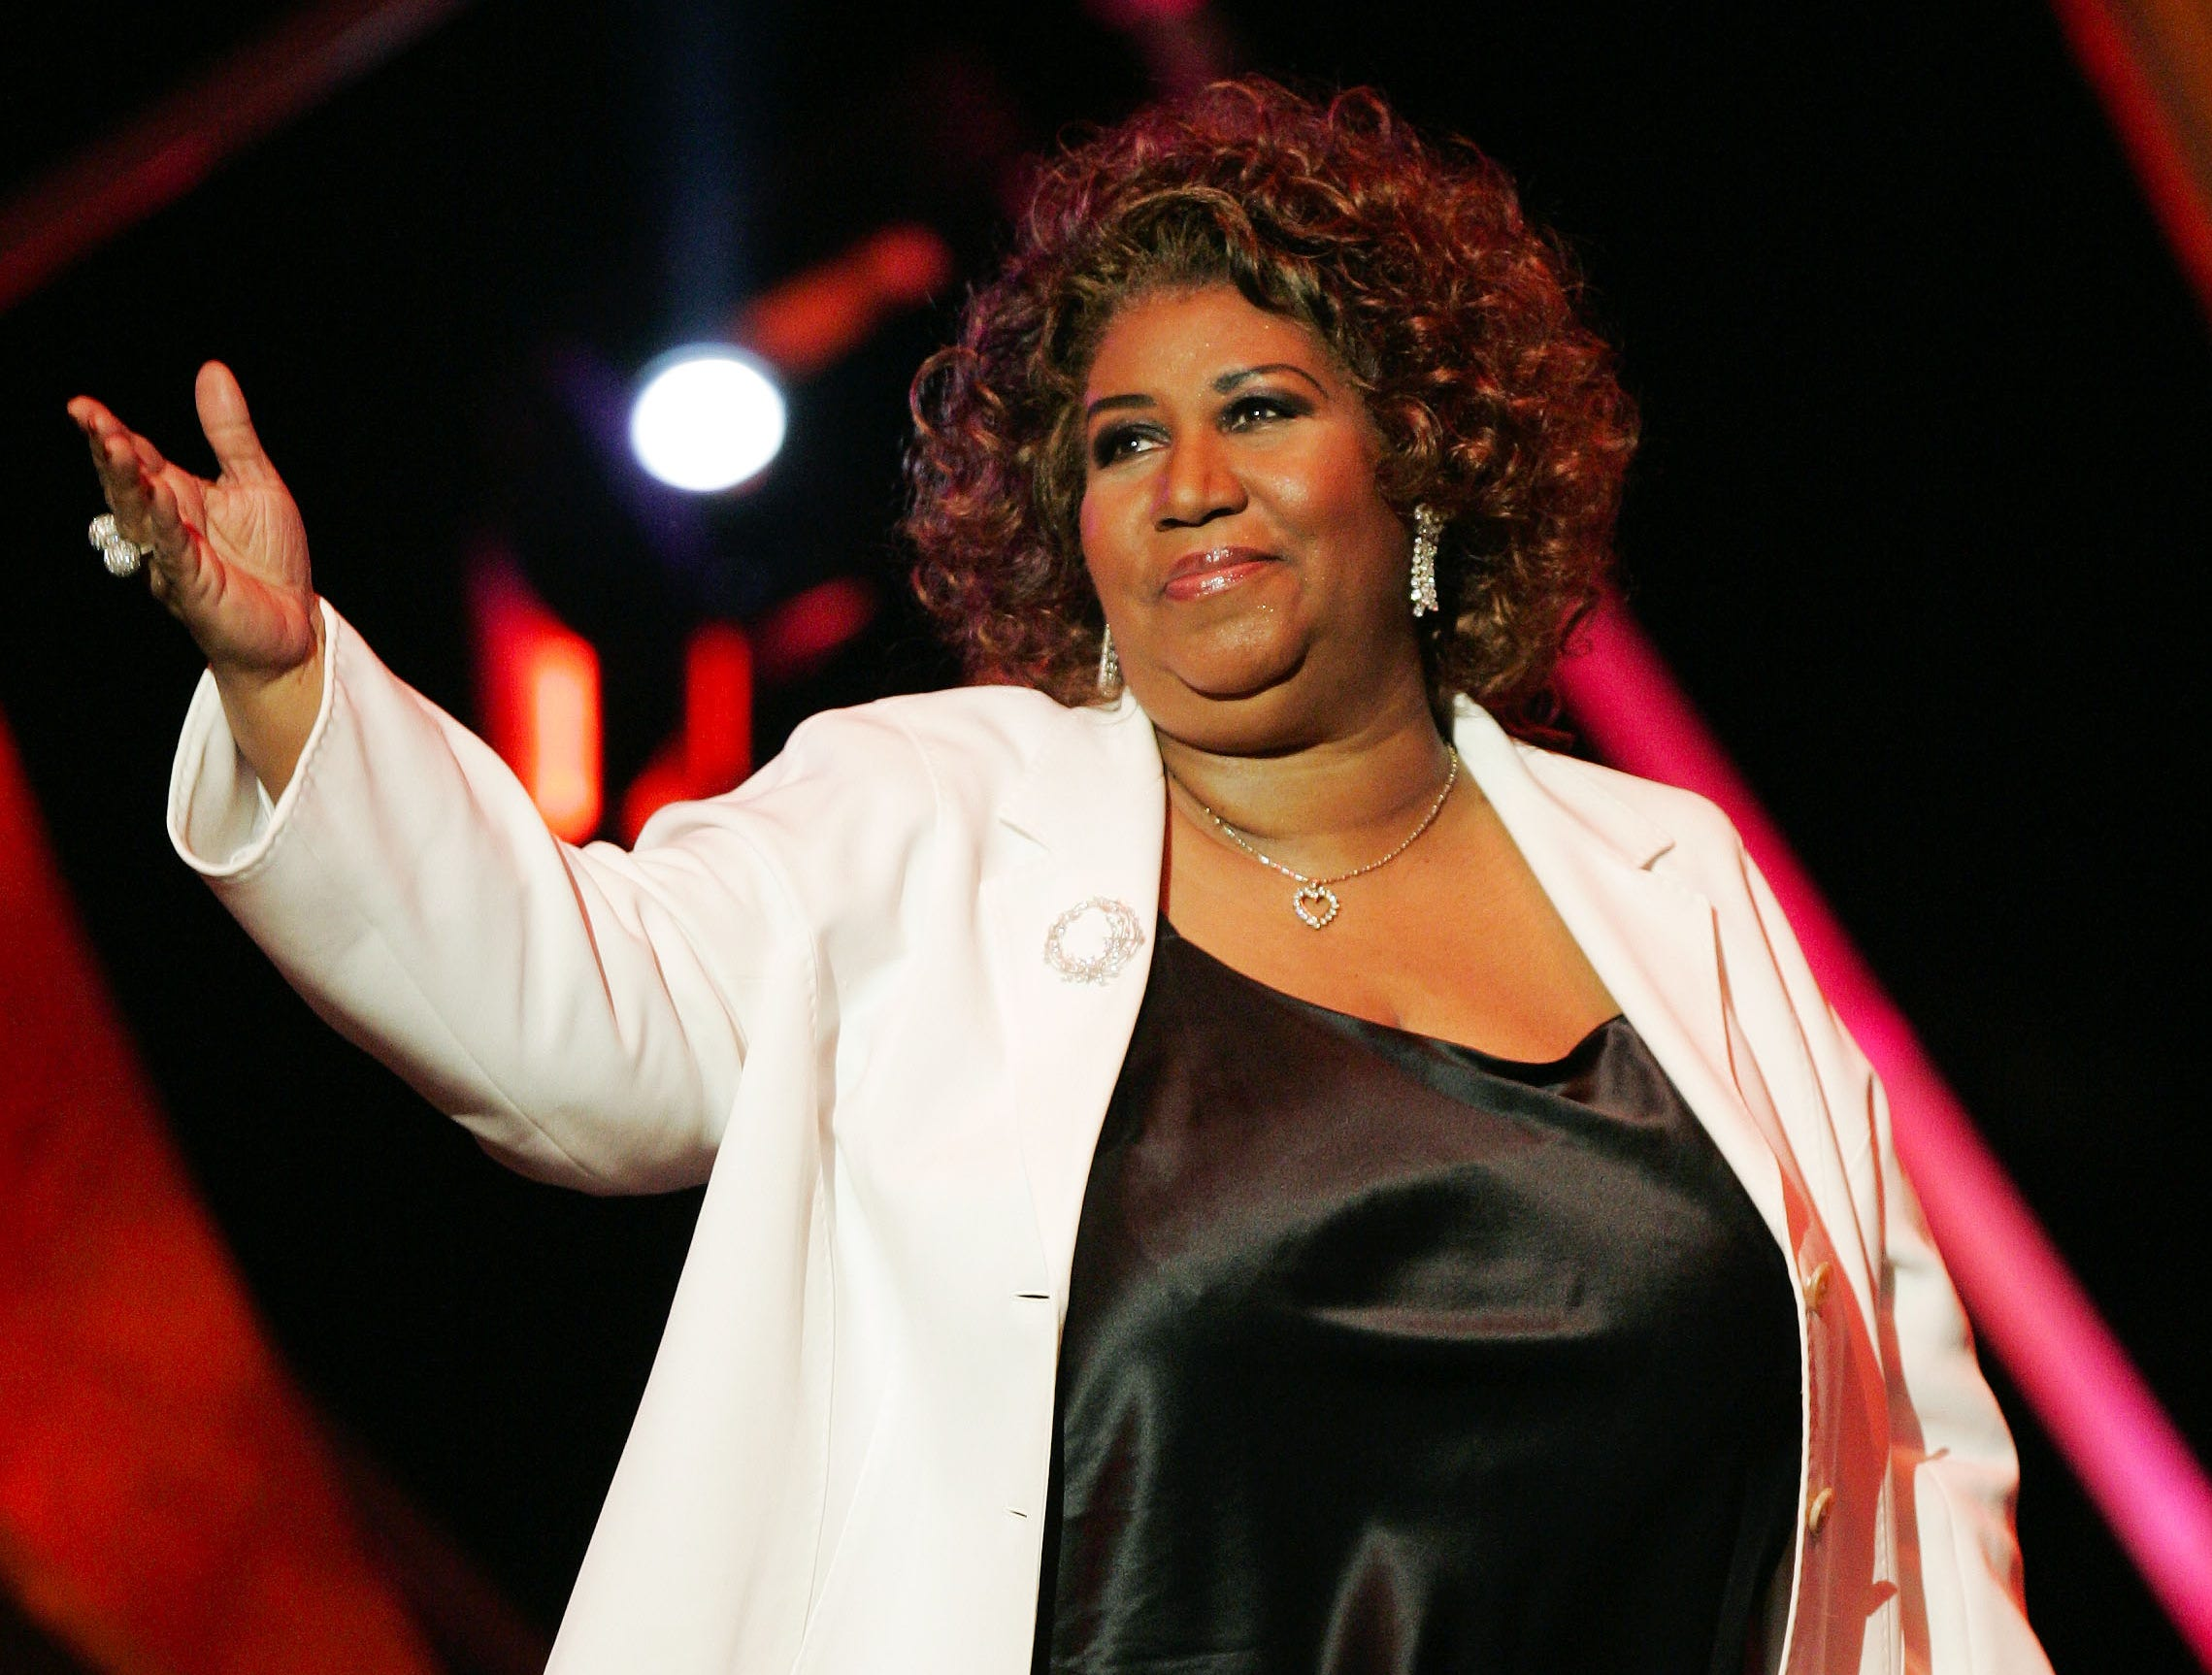 Aretha Franklin acknowledges the crowd at the 10th Annual Soul Train Lady of Soul Awards, Wednesday, Sept. 7, 2005, in Pasadena, Calif.